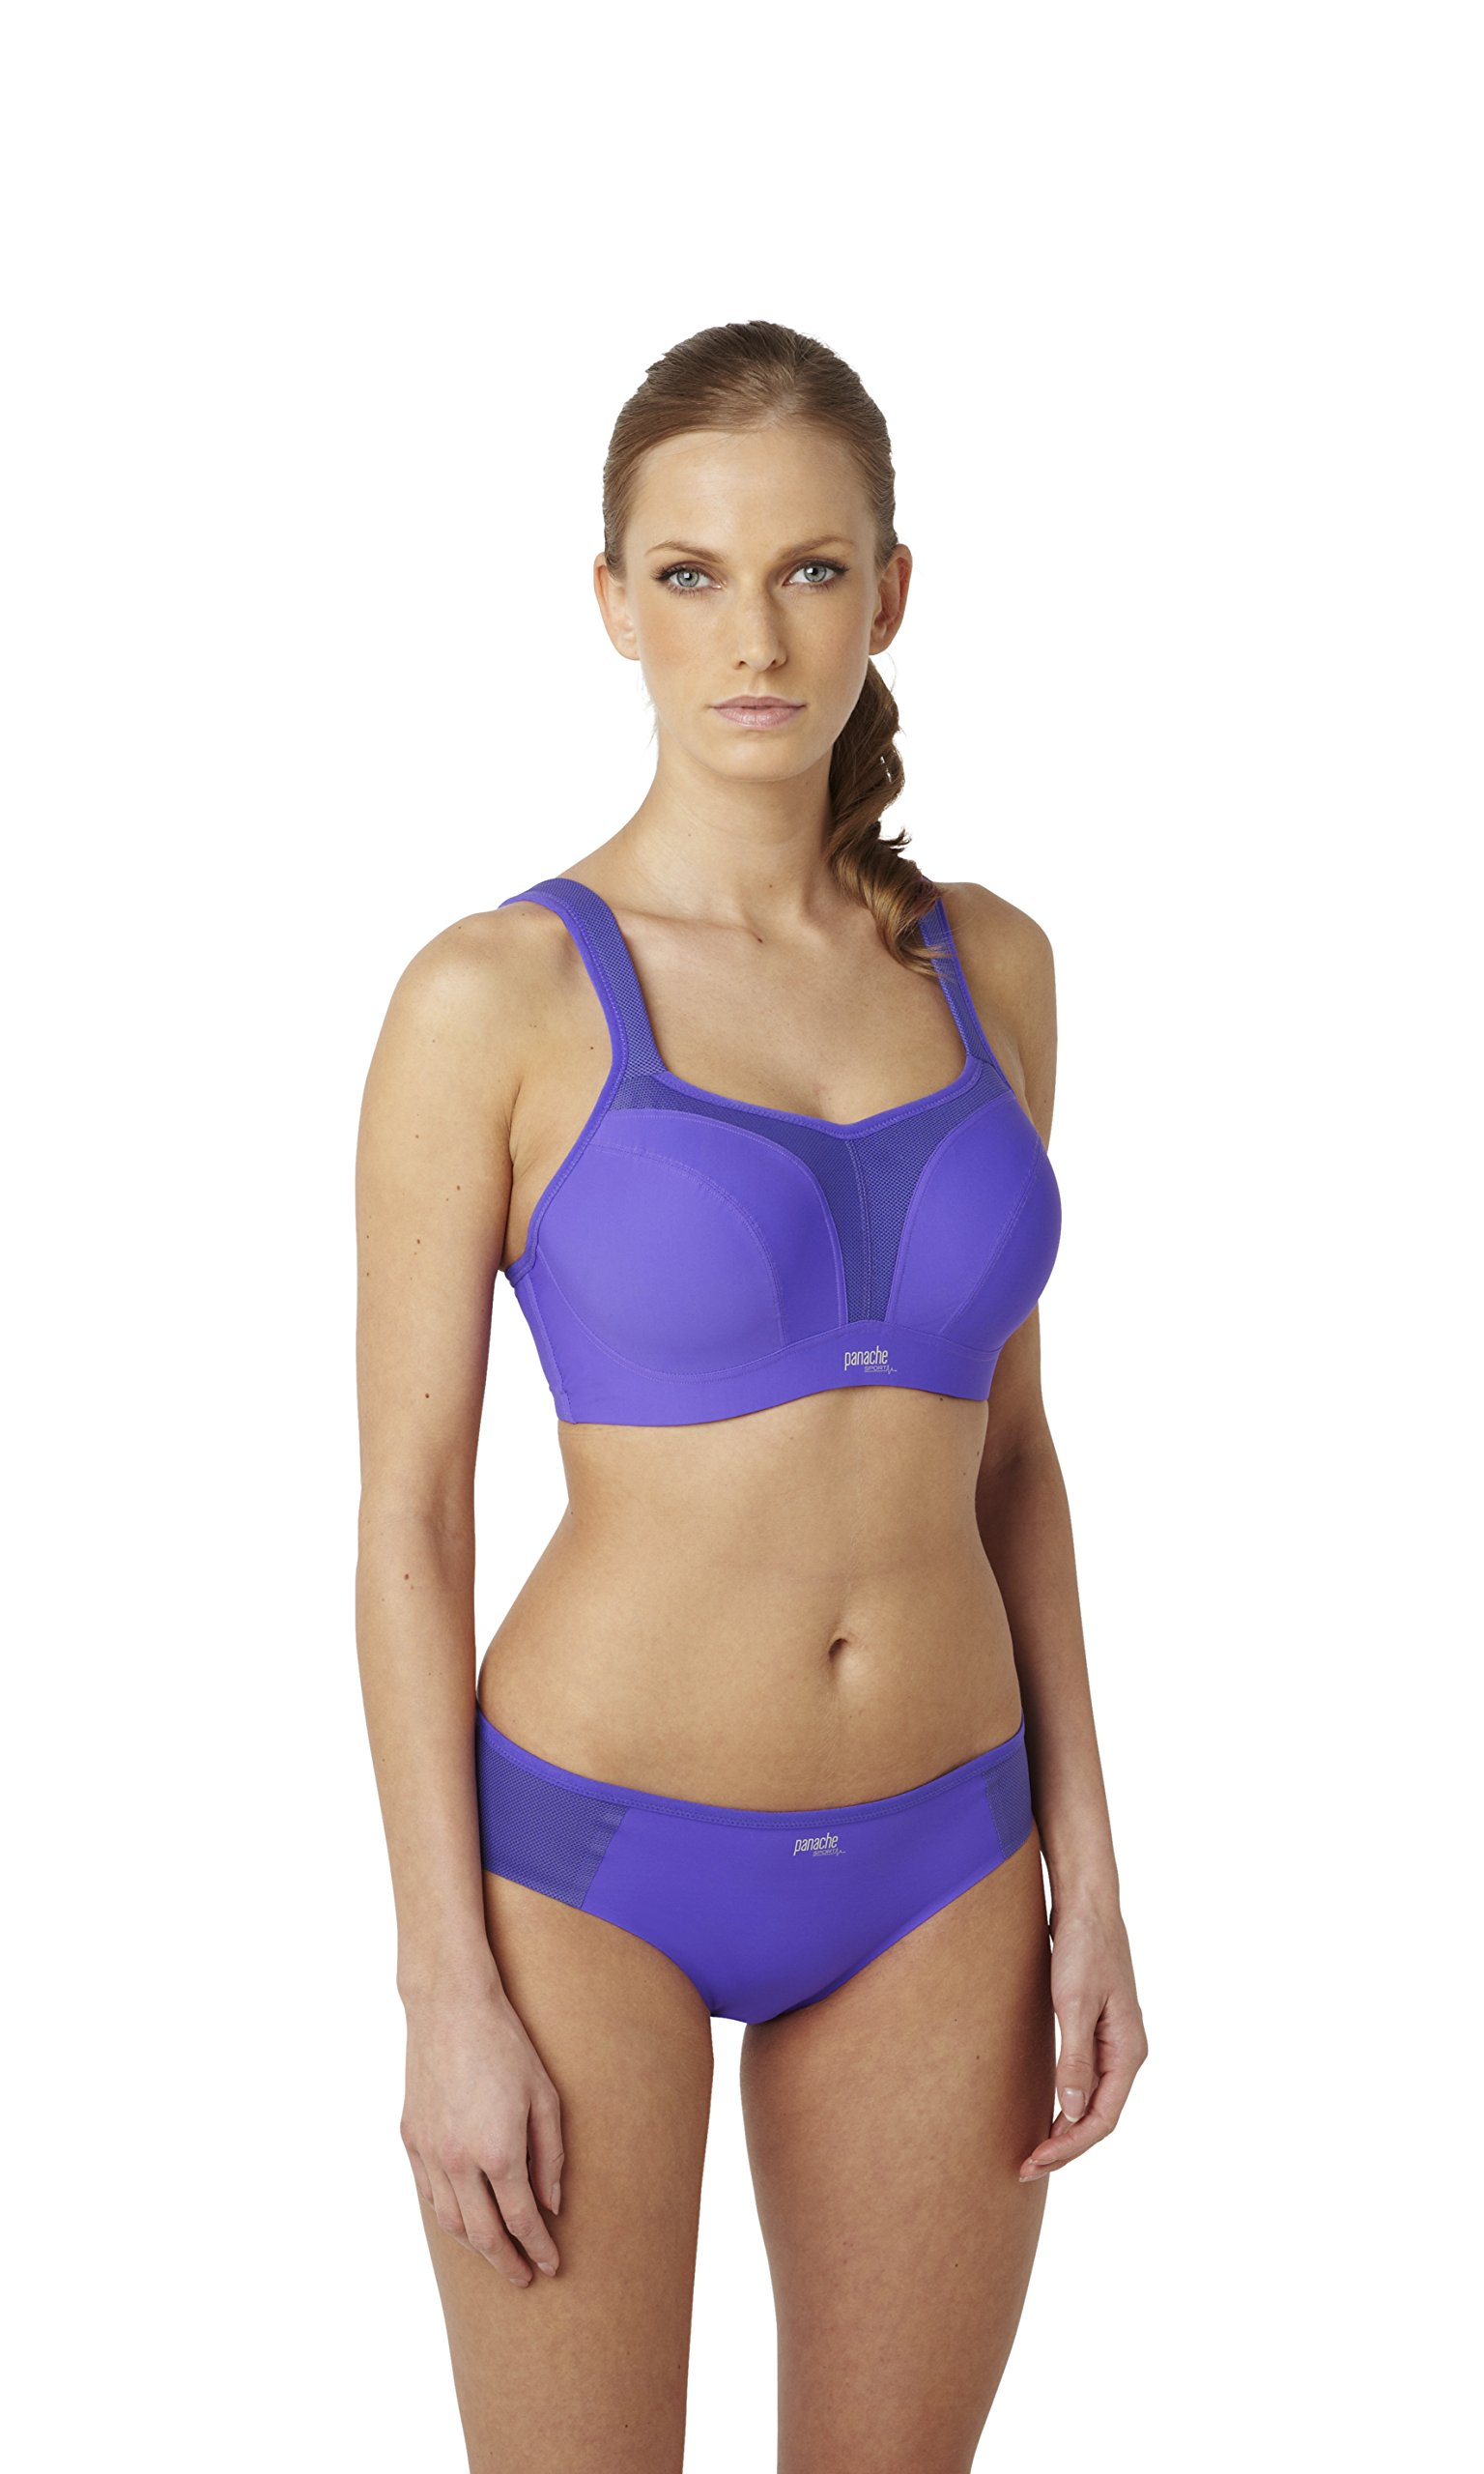 717uNX0ozNL - panache Women's Full Cup Sports Bra